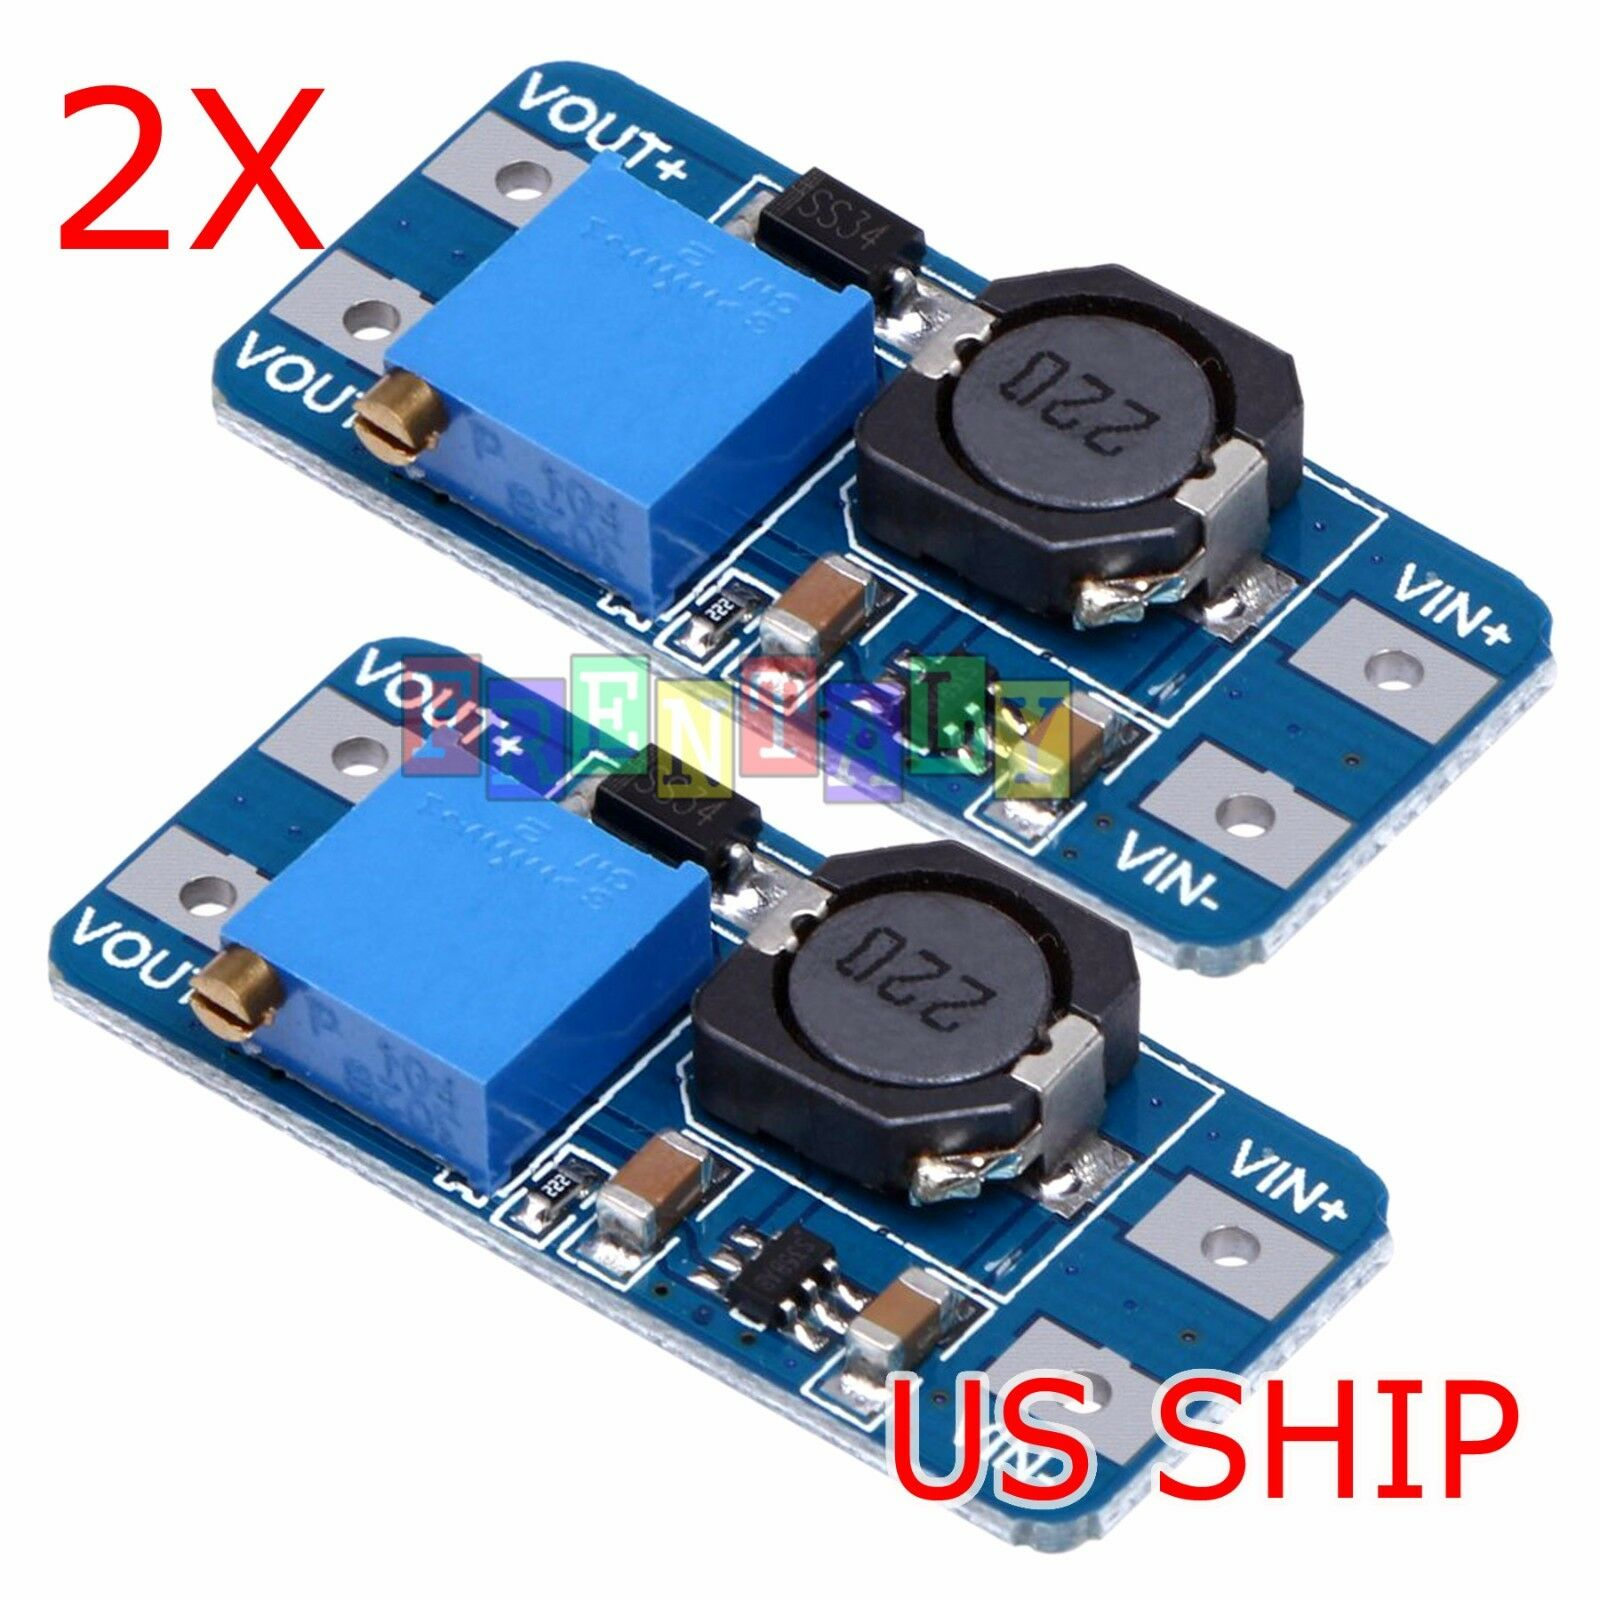 2 Pcs Mt3608 Dc Adjustable Step Up Power Converter Module For The Stepup Mc34063a 1 Of 5free Shipping